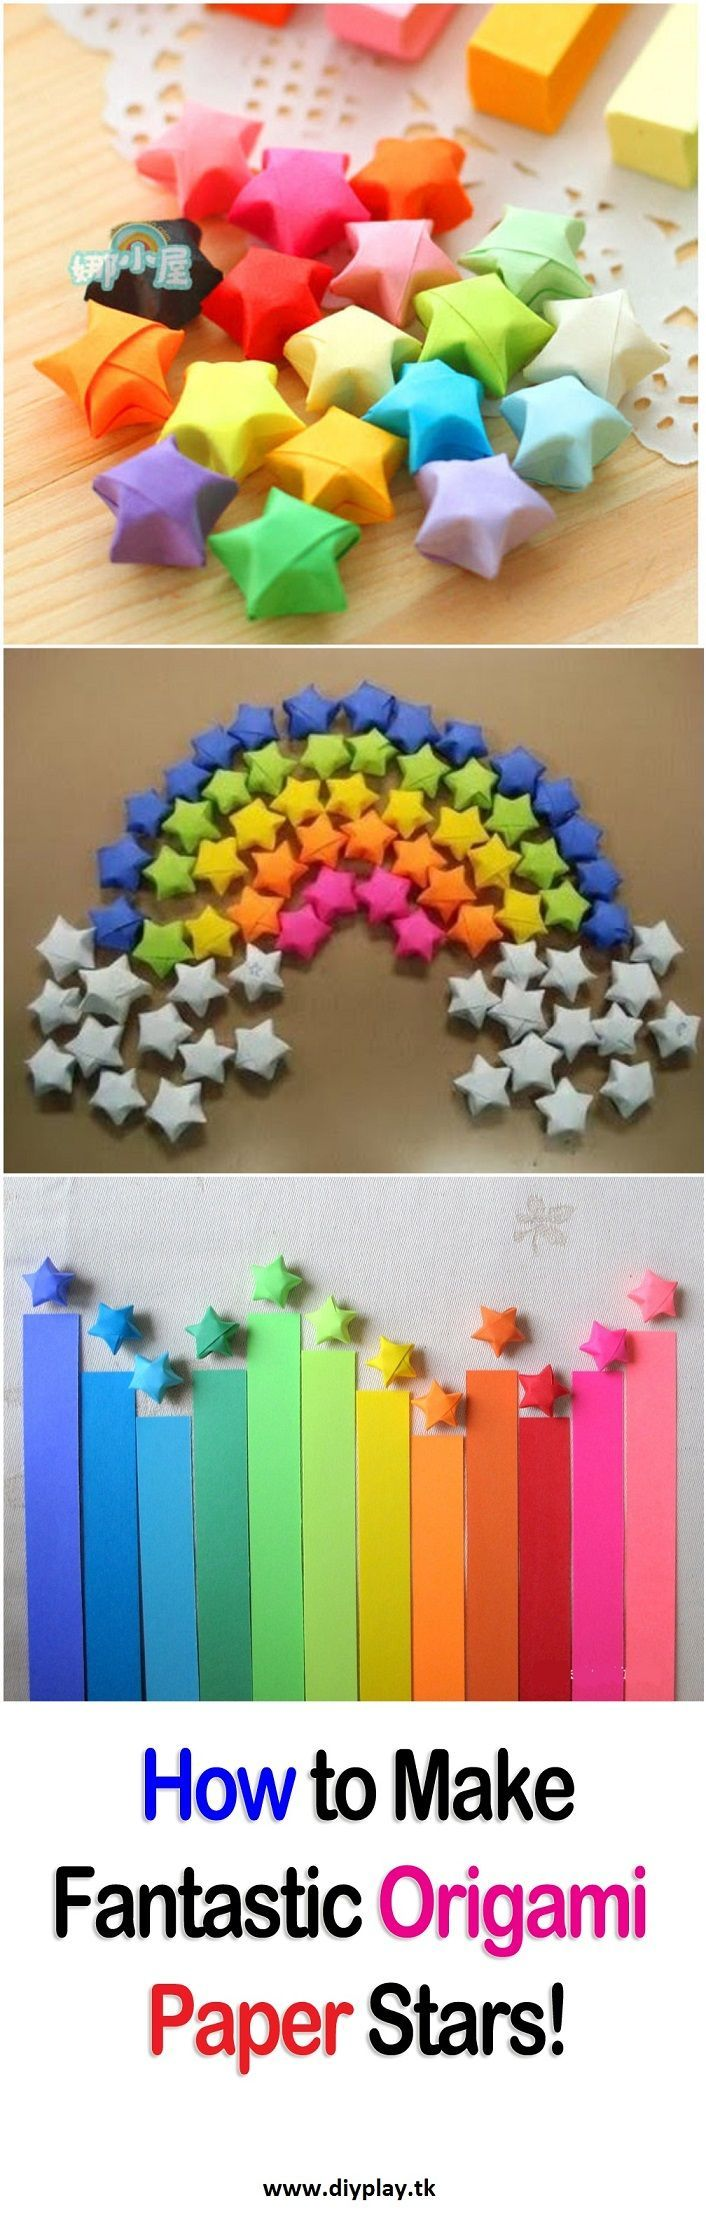 25 best ideas about origami lantern on pinterest for How to make paper lanterns easy